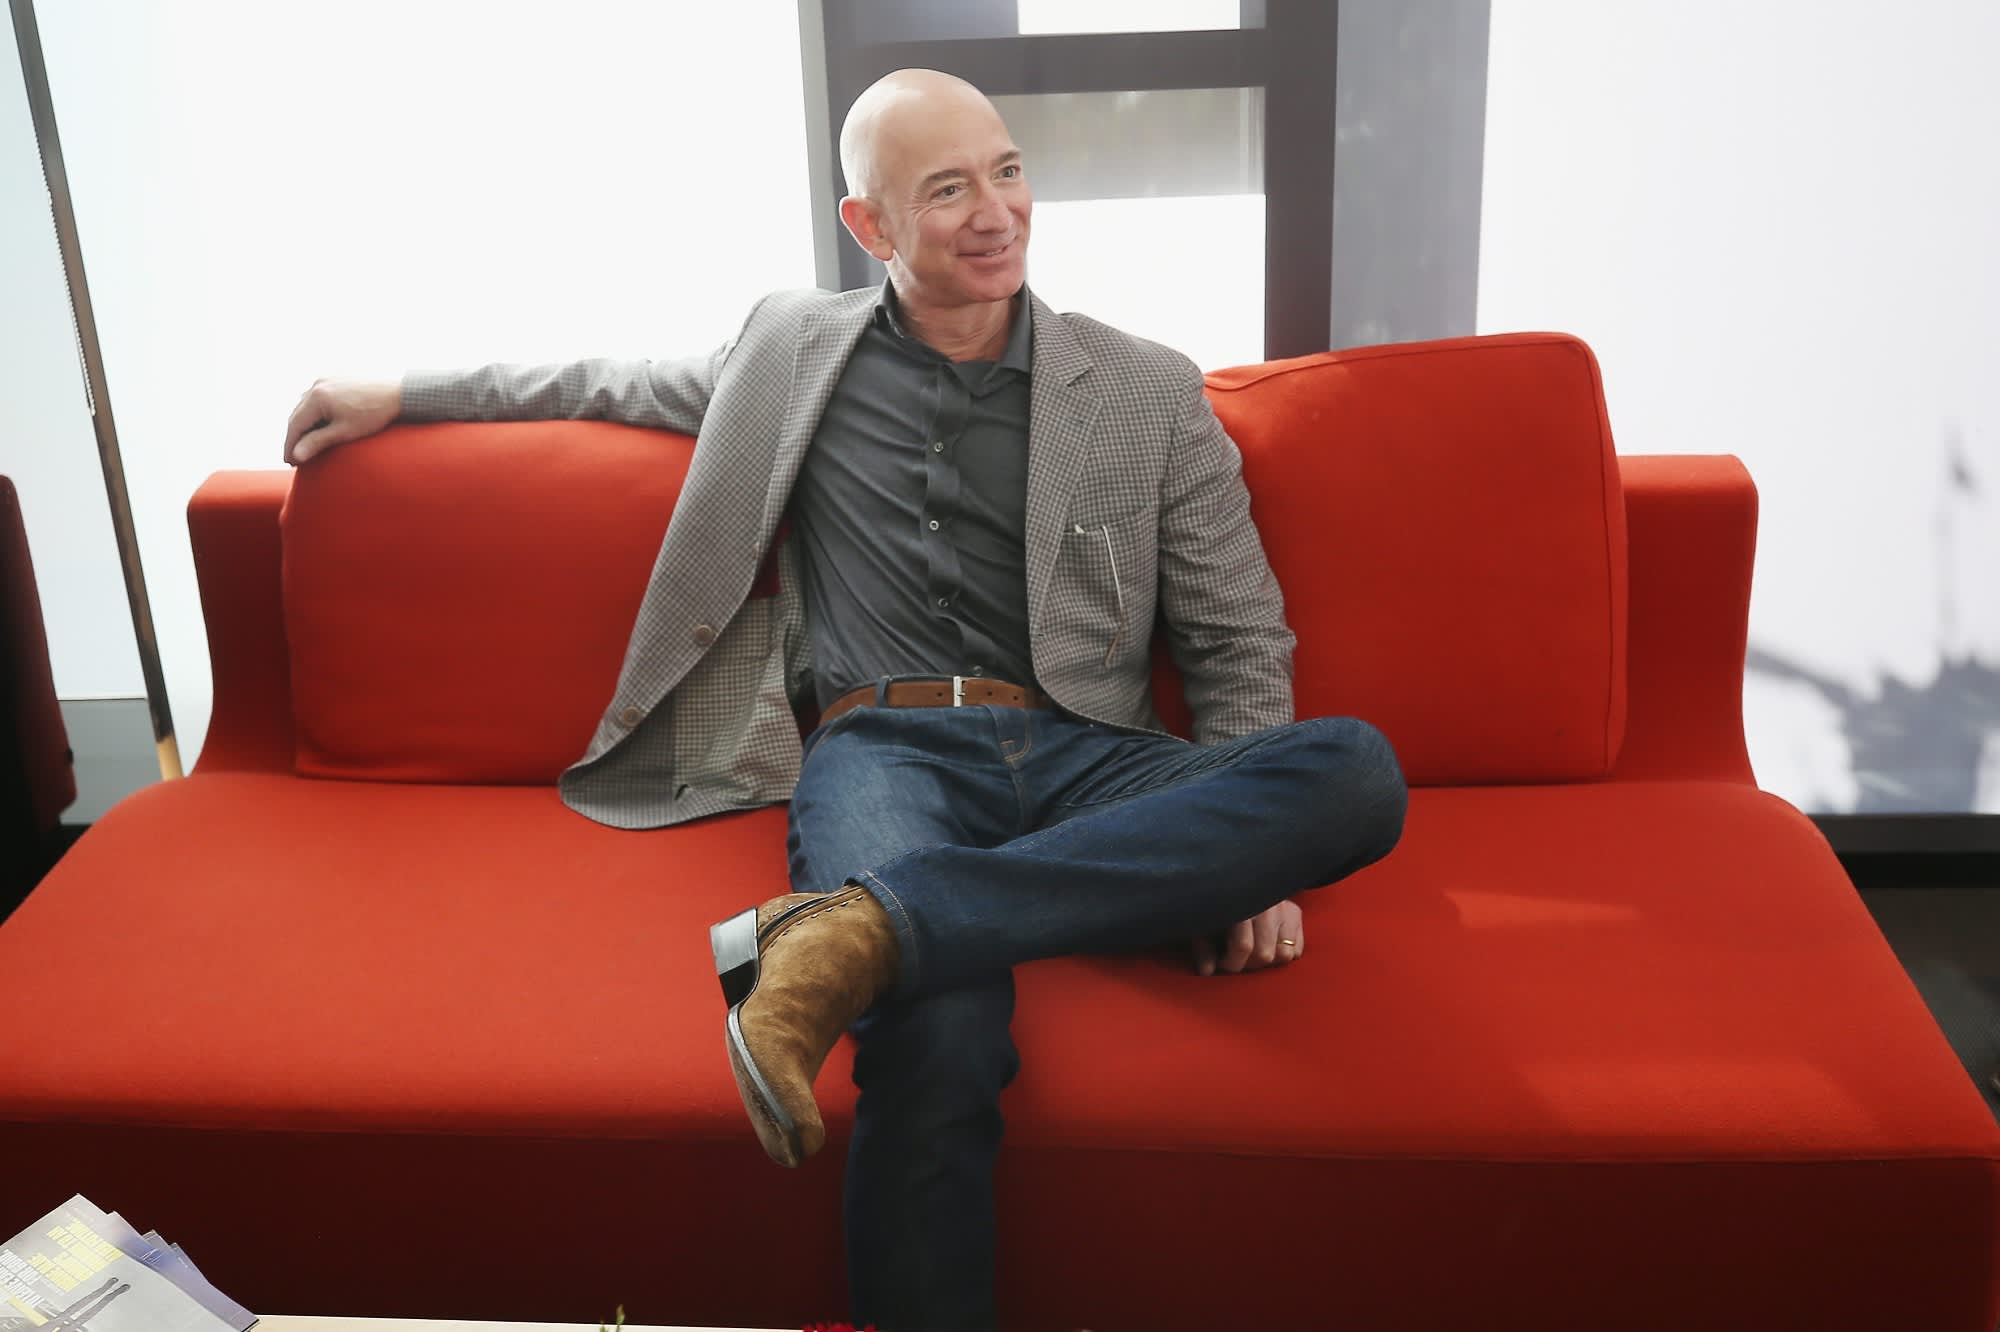 Amazon CEO Jeff Bezos has sold roughly $2.8 billion worth of stock in the last week, new filings show